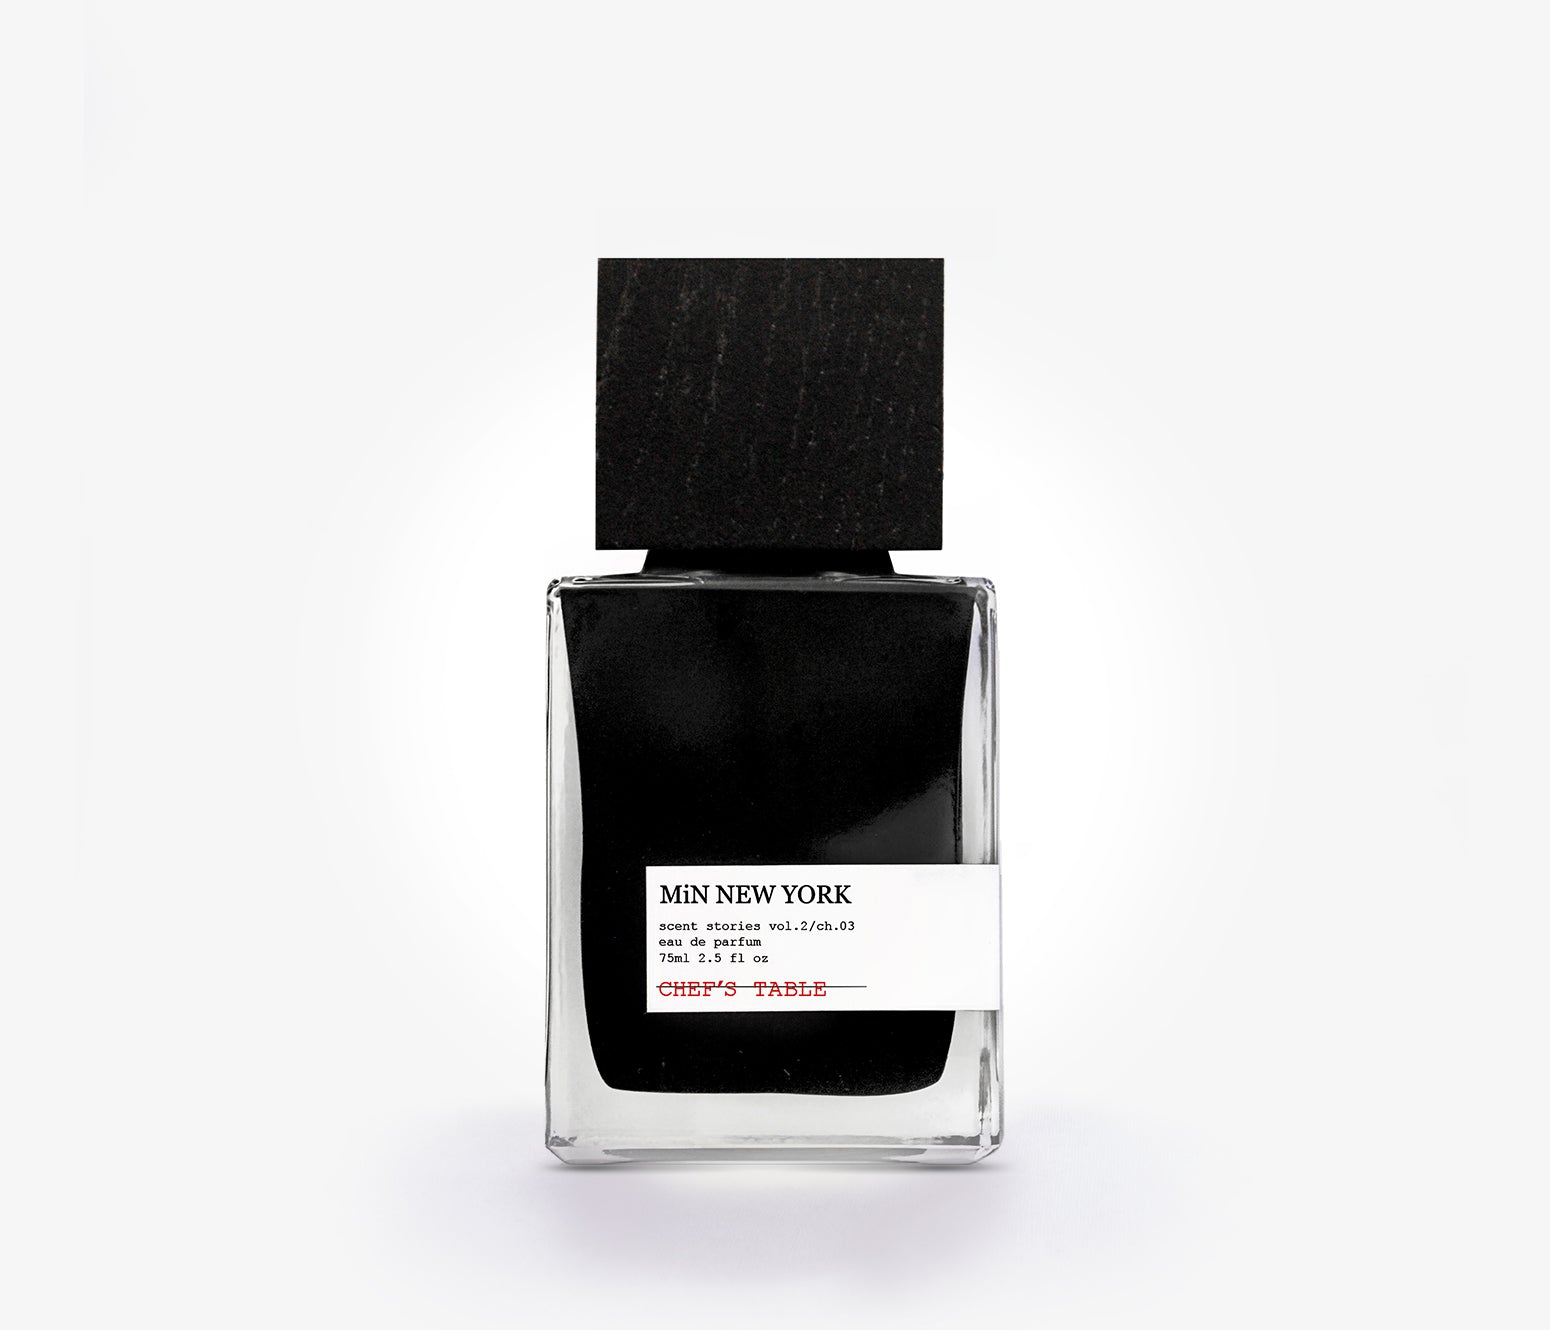 MiN New York - Chef's Table - 75ml - SWD001 - Product Image - Fragrance - Les Senteurs